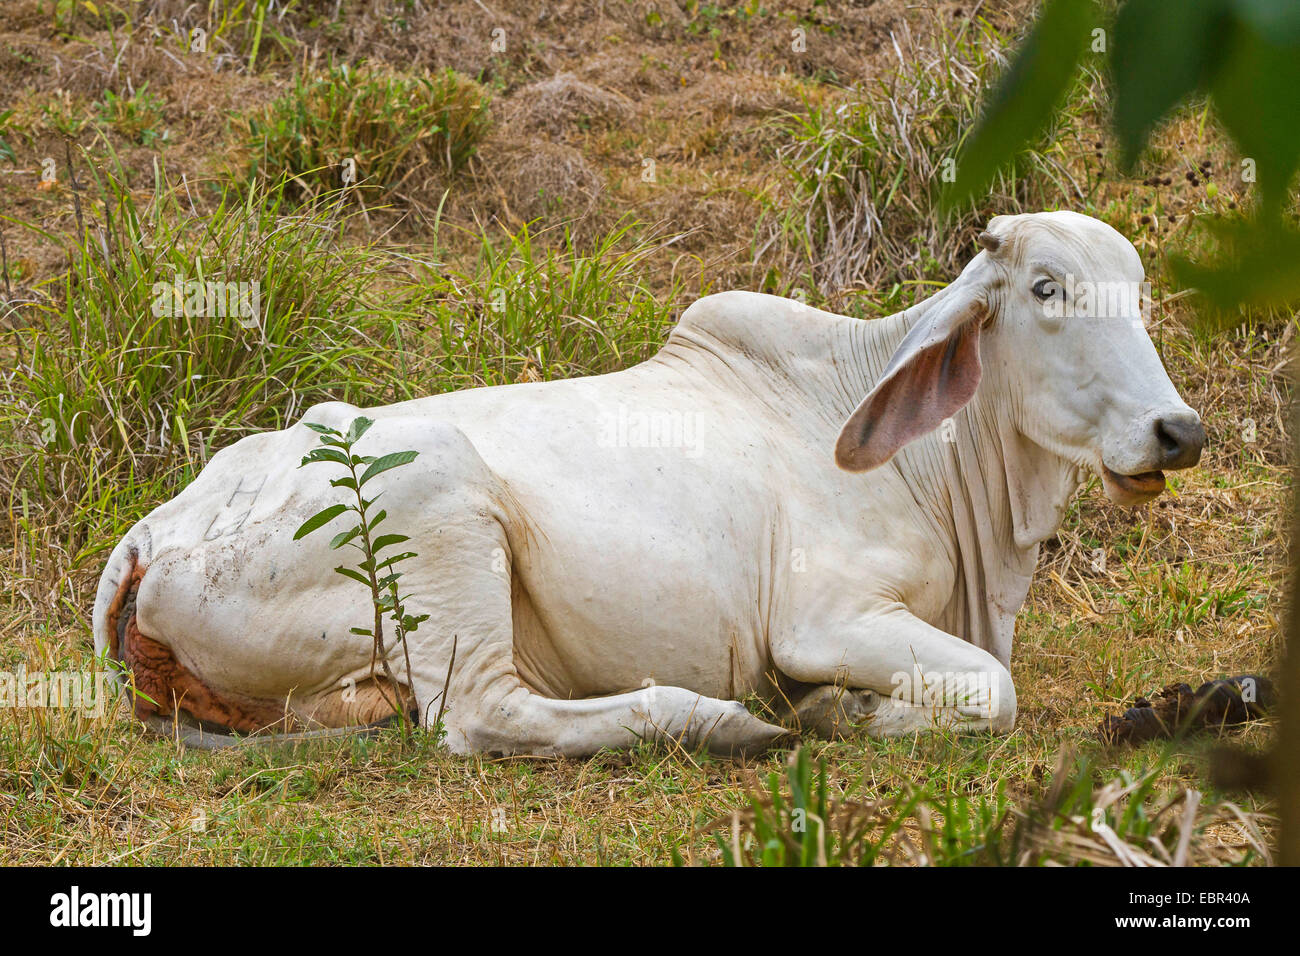 Zebu, Humped Cattle, Indicus Cattle (Bos primigenius indicus, Bos indicus), ruminating in a meadow, Costa Rica, - Stock Image